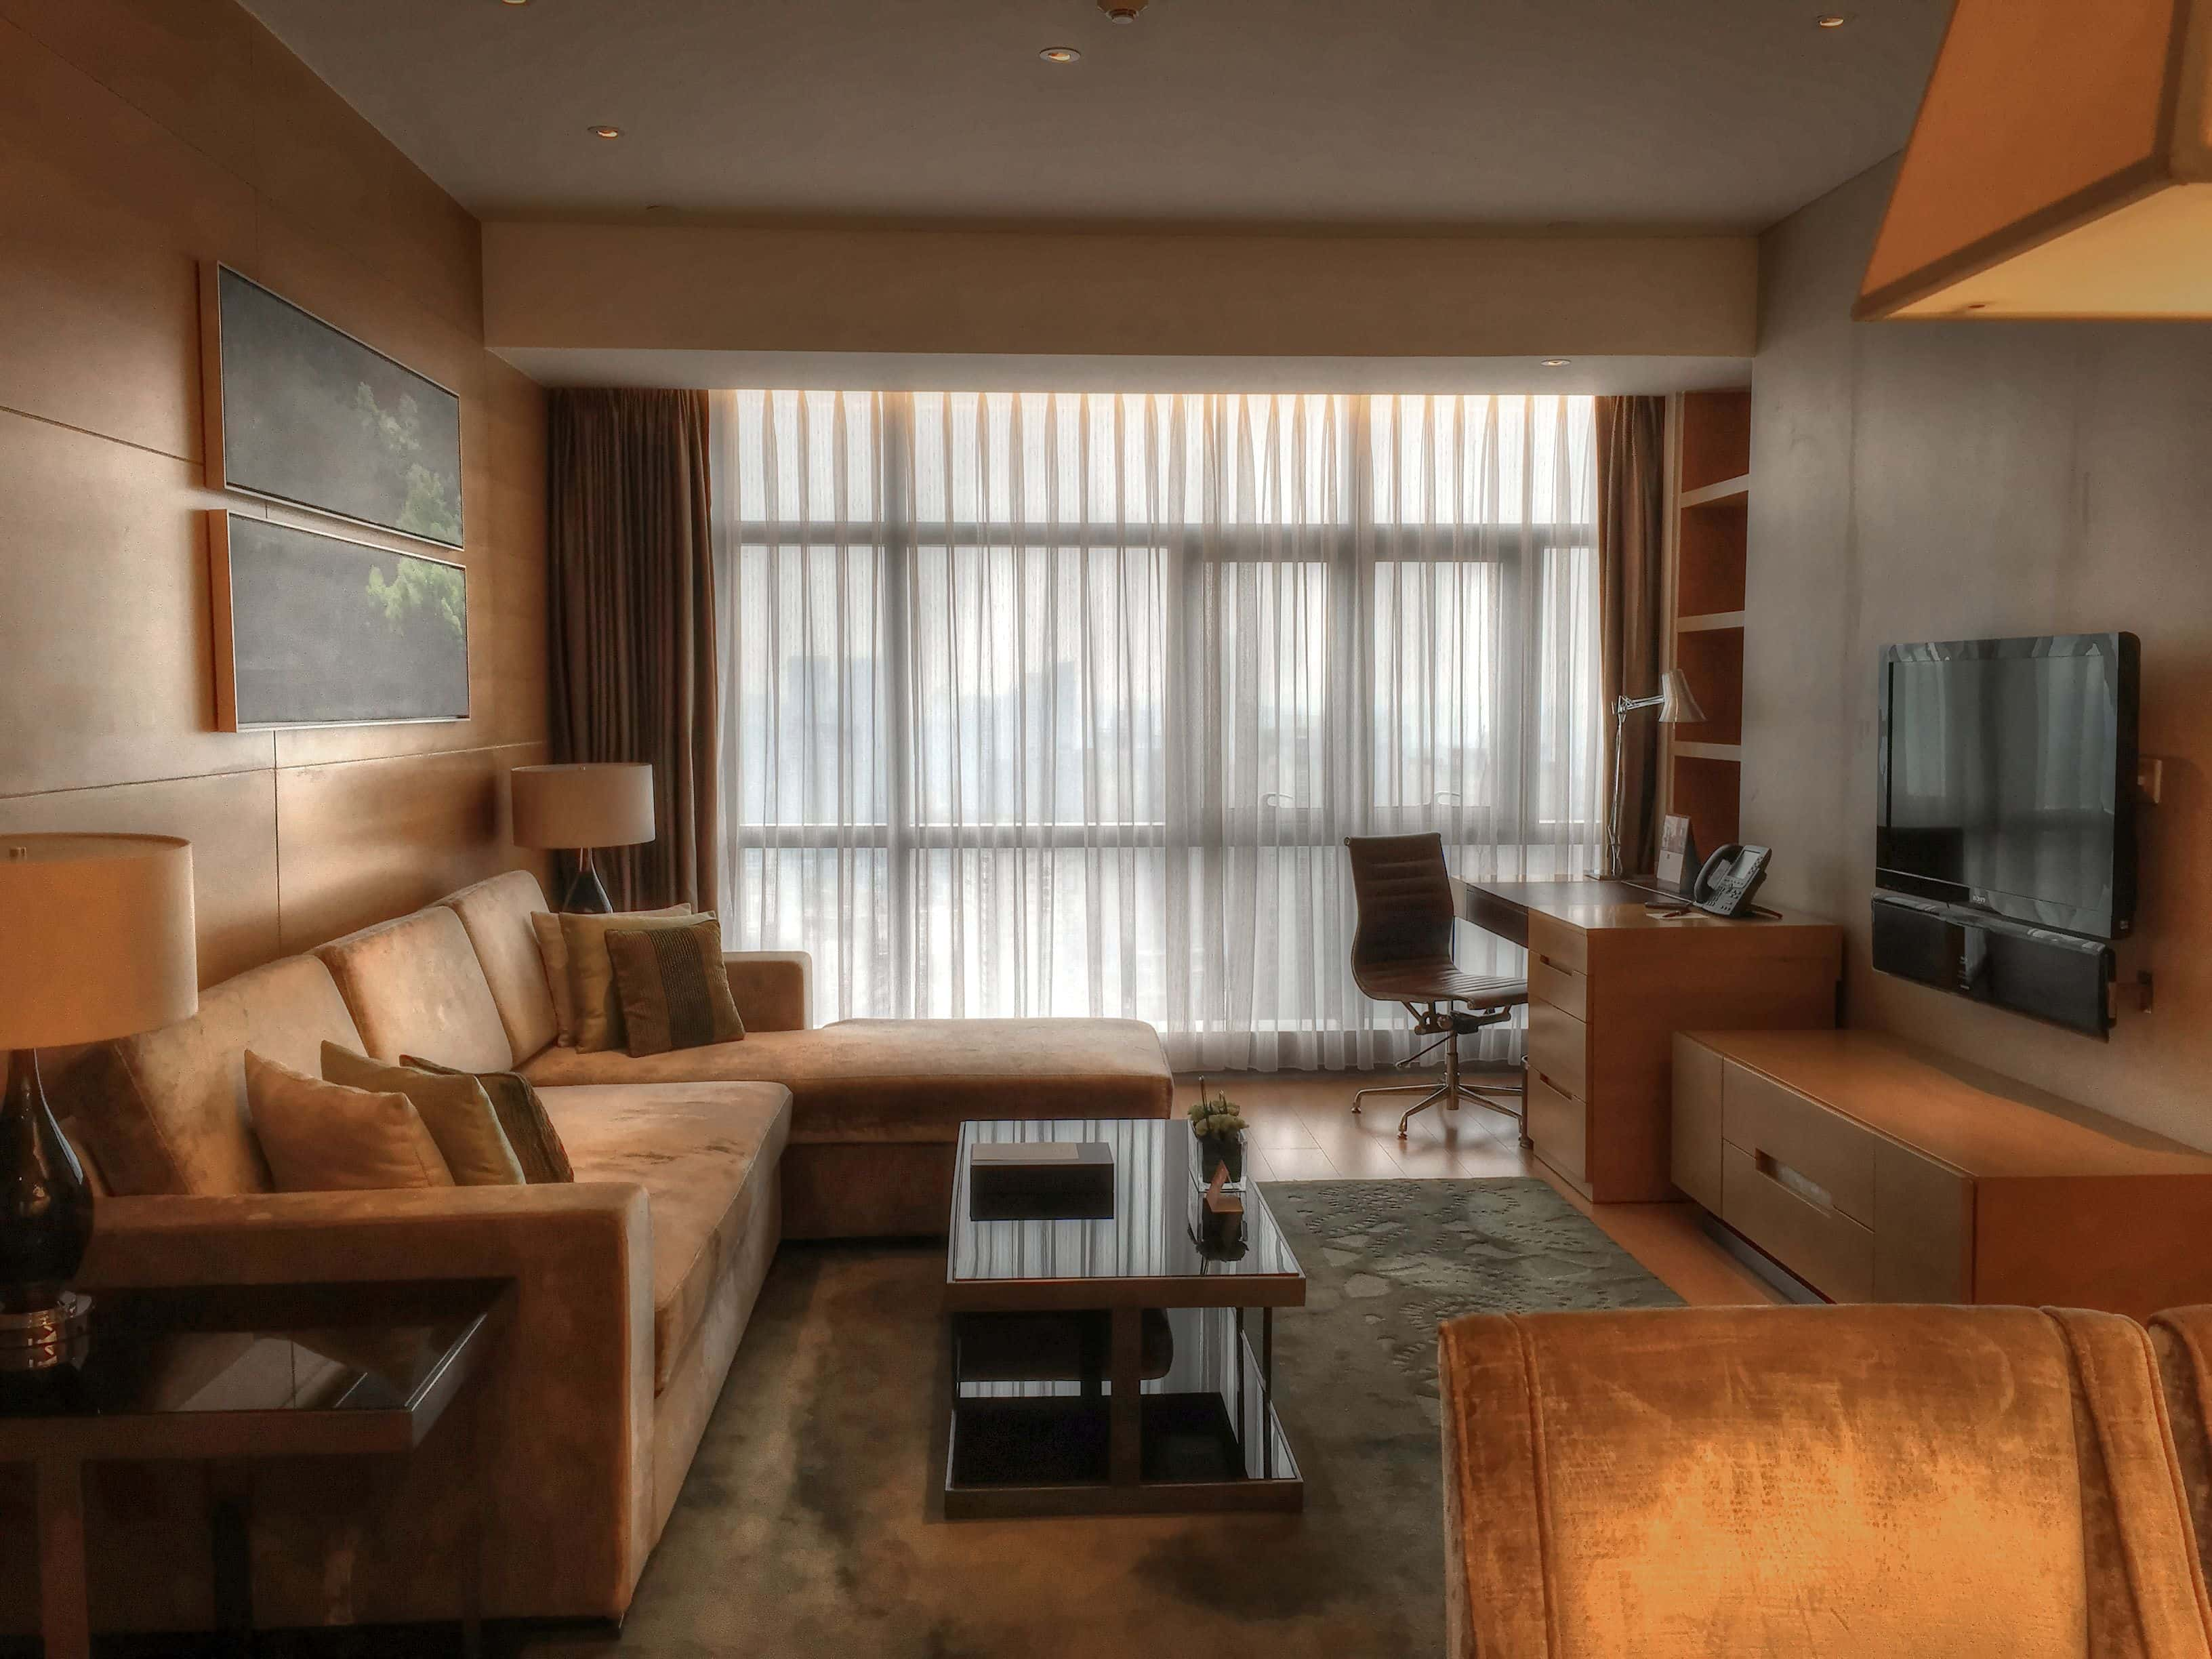 Fraser Suites Review (Chengdu)